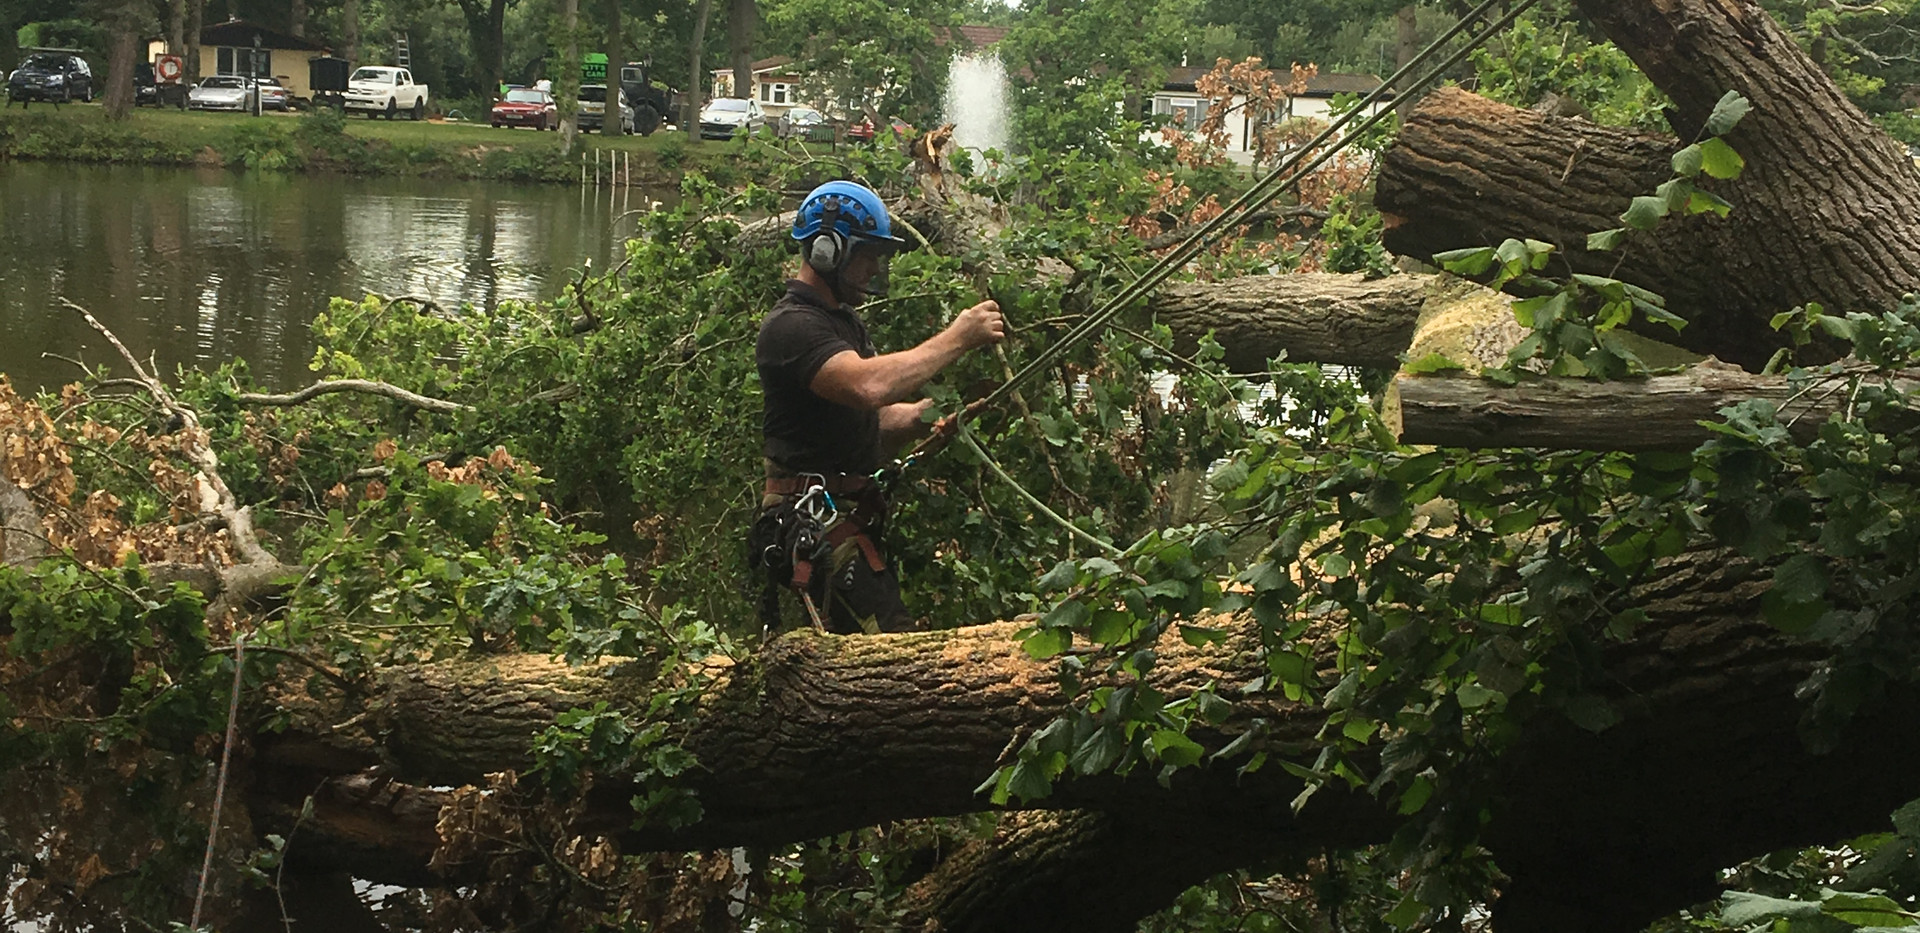 oak tree falledn in lake being removed